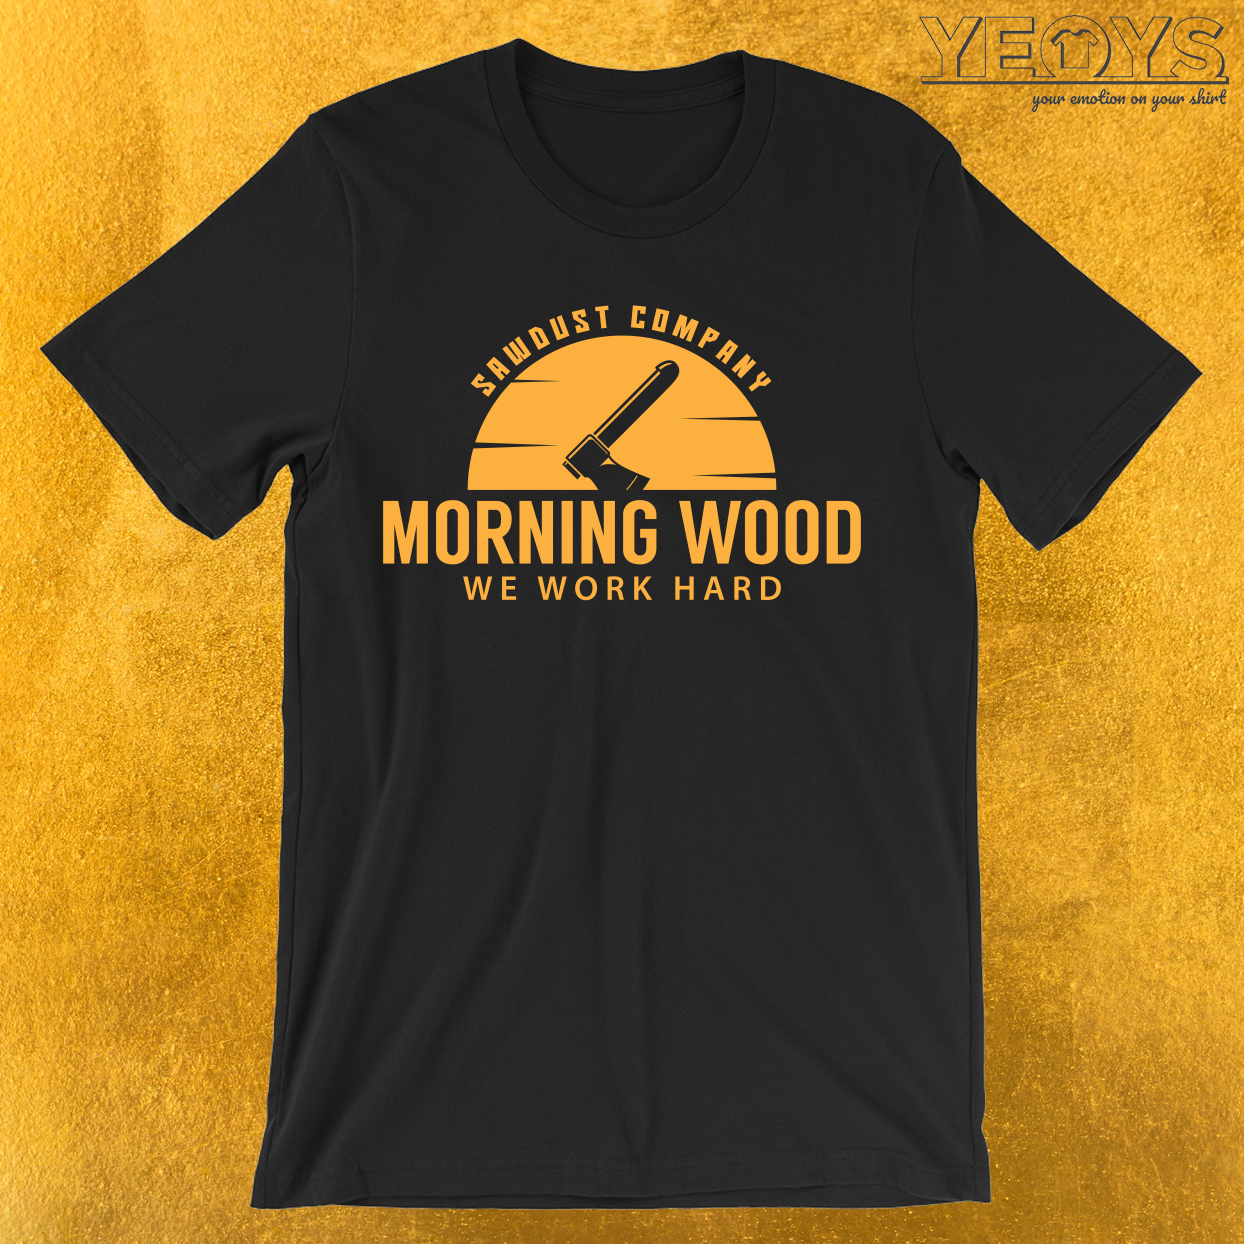 Morning Wood Sawdust Company T-Shirt